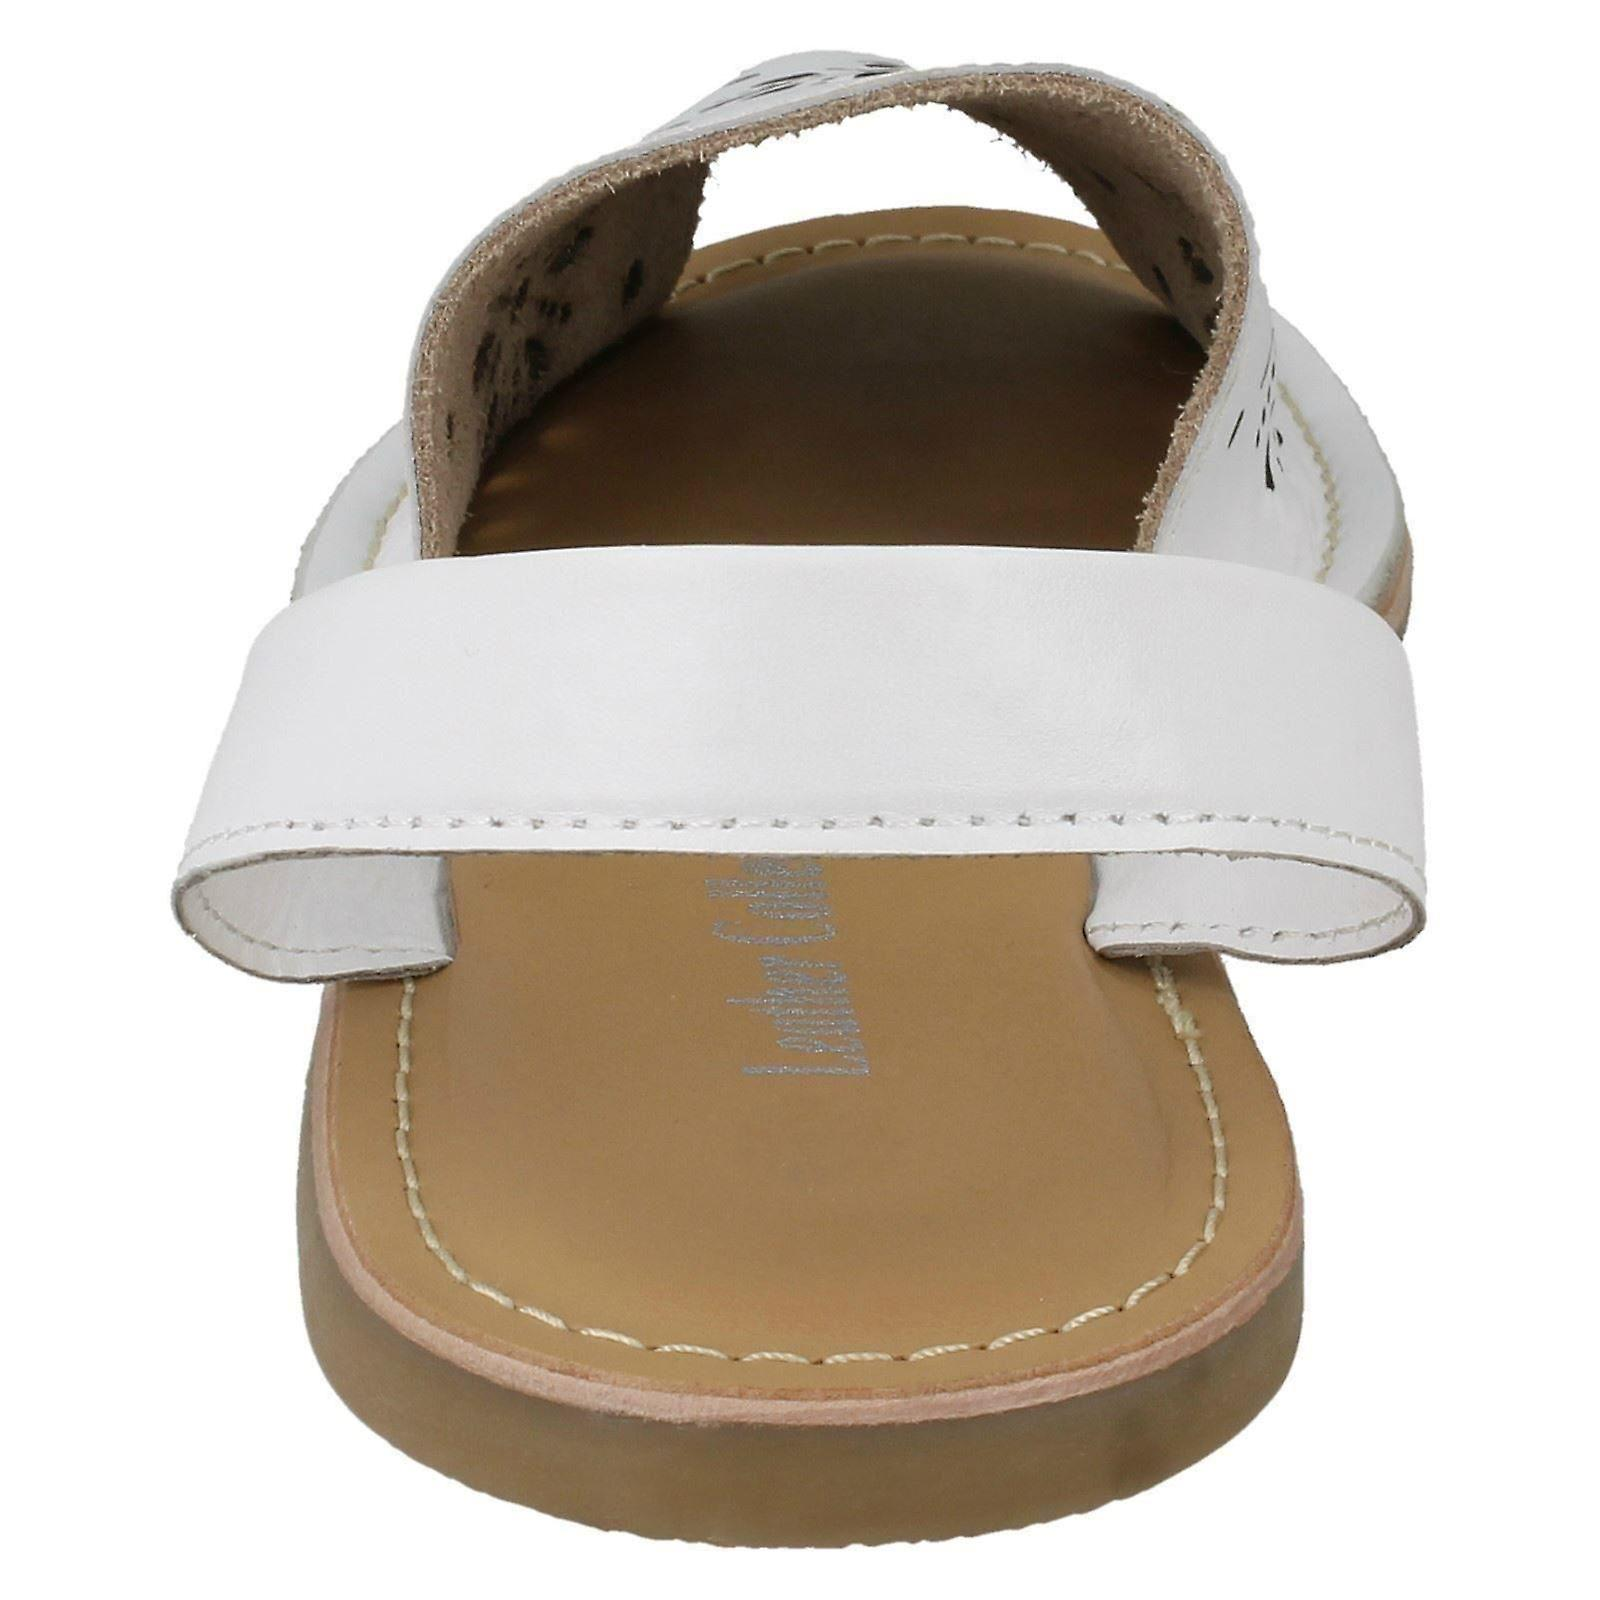 White Leather F00144 41 Design Size Leather US UK Size Mules Size Ladies 8 Collection EU 10 Flower 0nwCg4xfq